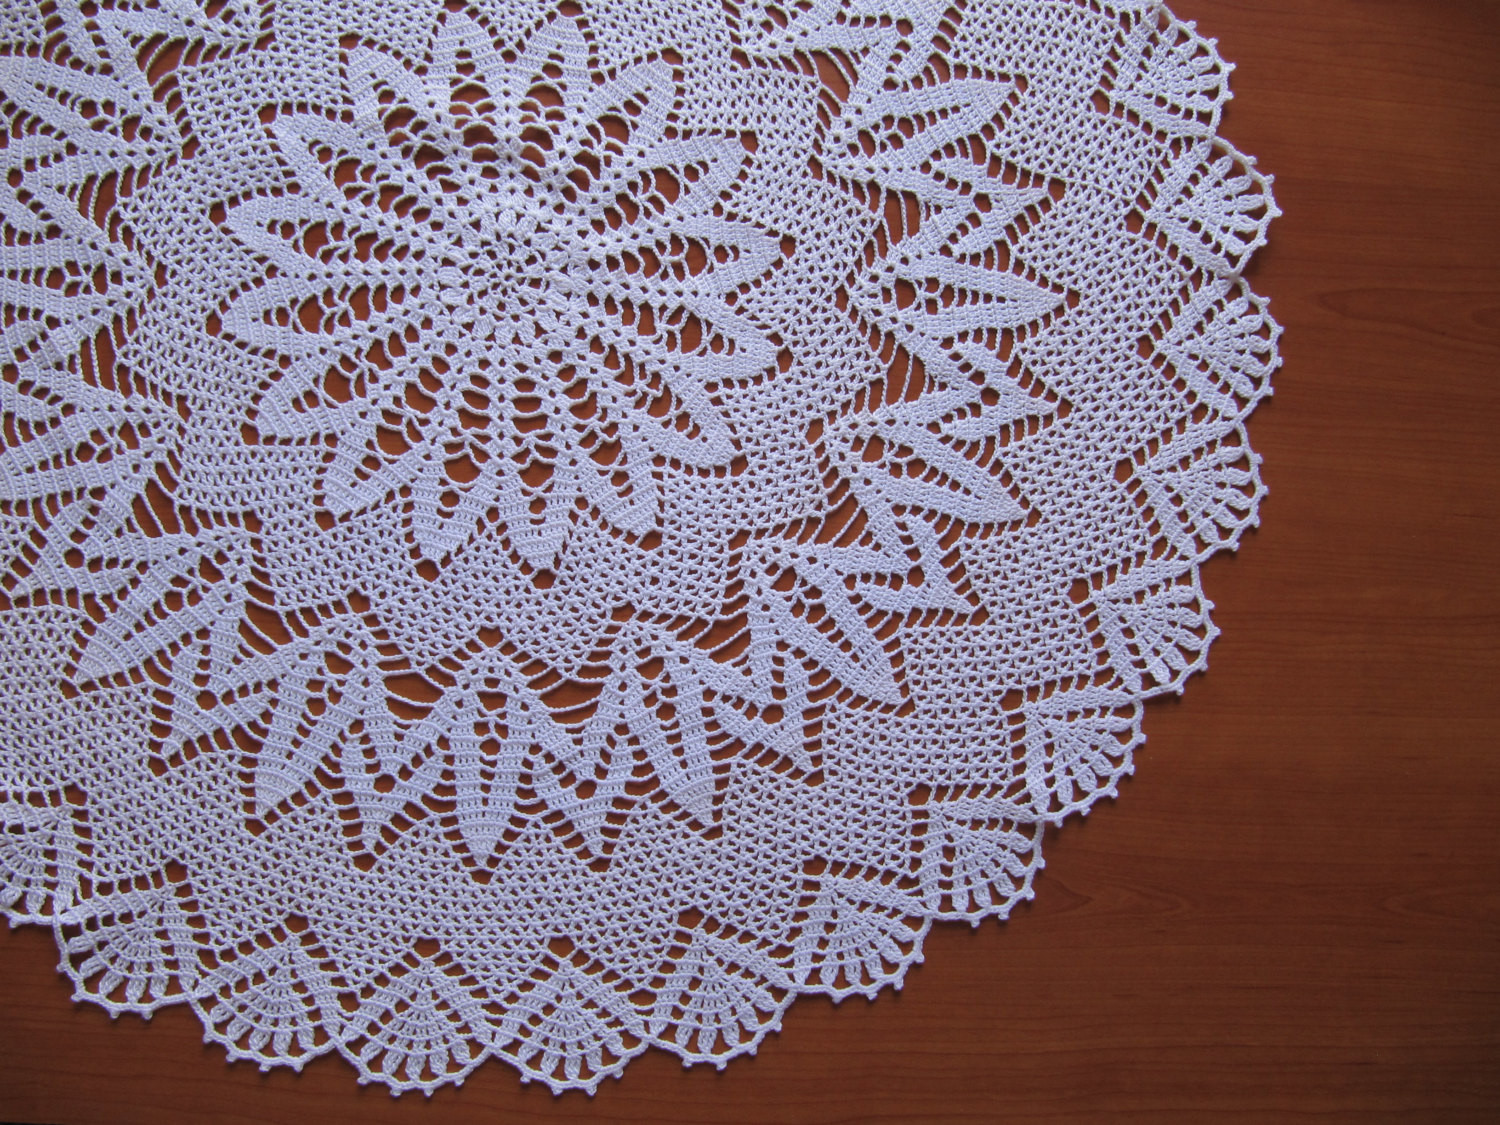 Crochet Round Tablecloth Inspirational Lace Crochet Tablecloth Handmade White Round Cover Of Beautiful 41 Pictures Crochet Round Tablecloth